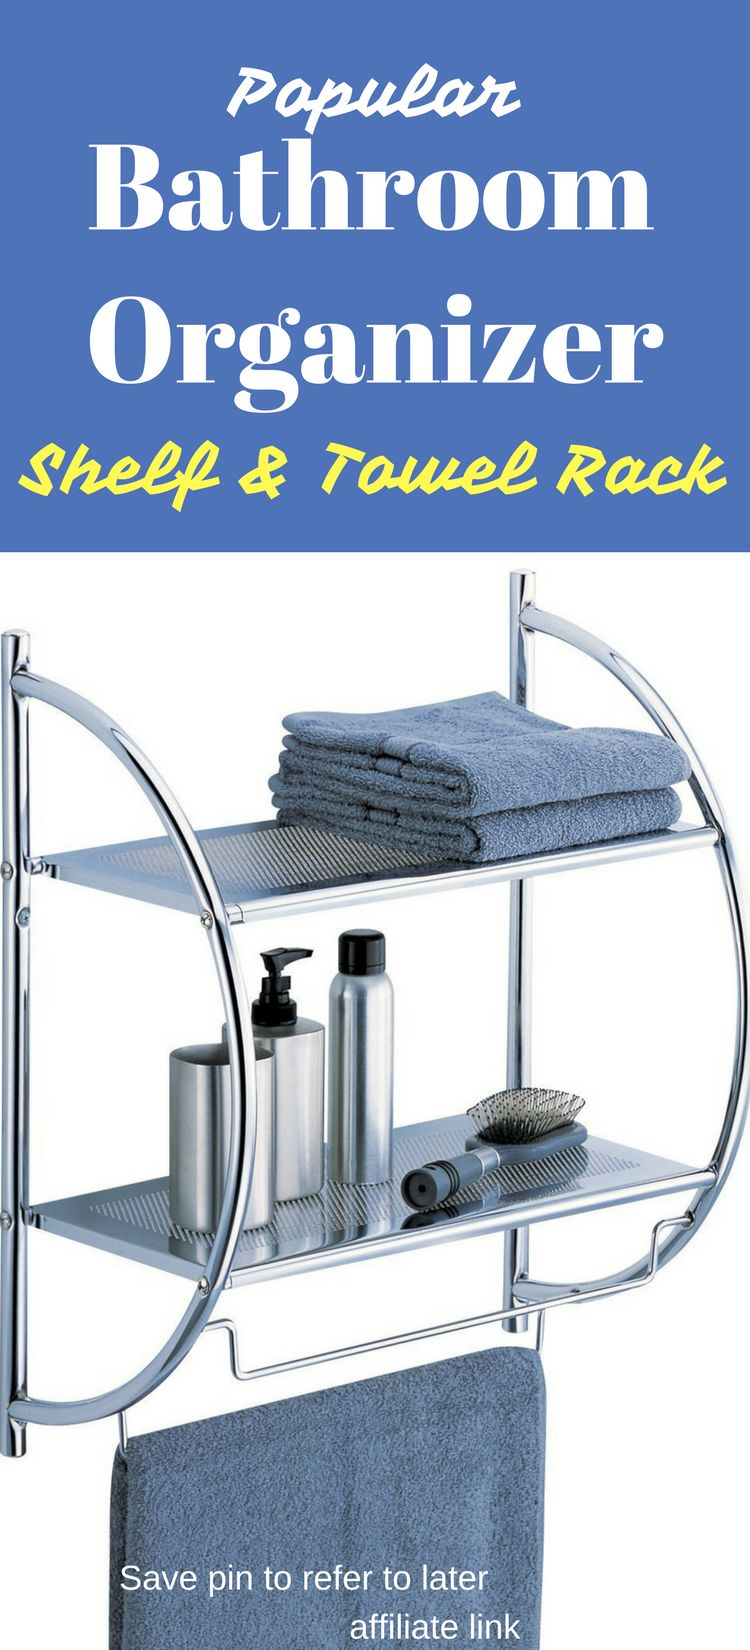 Popular Bathroom Organizer Shelf and Towel Rack.  Save pin now to revisit later